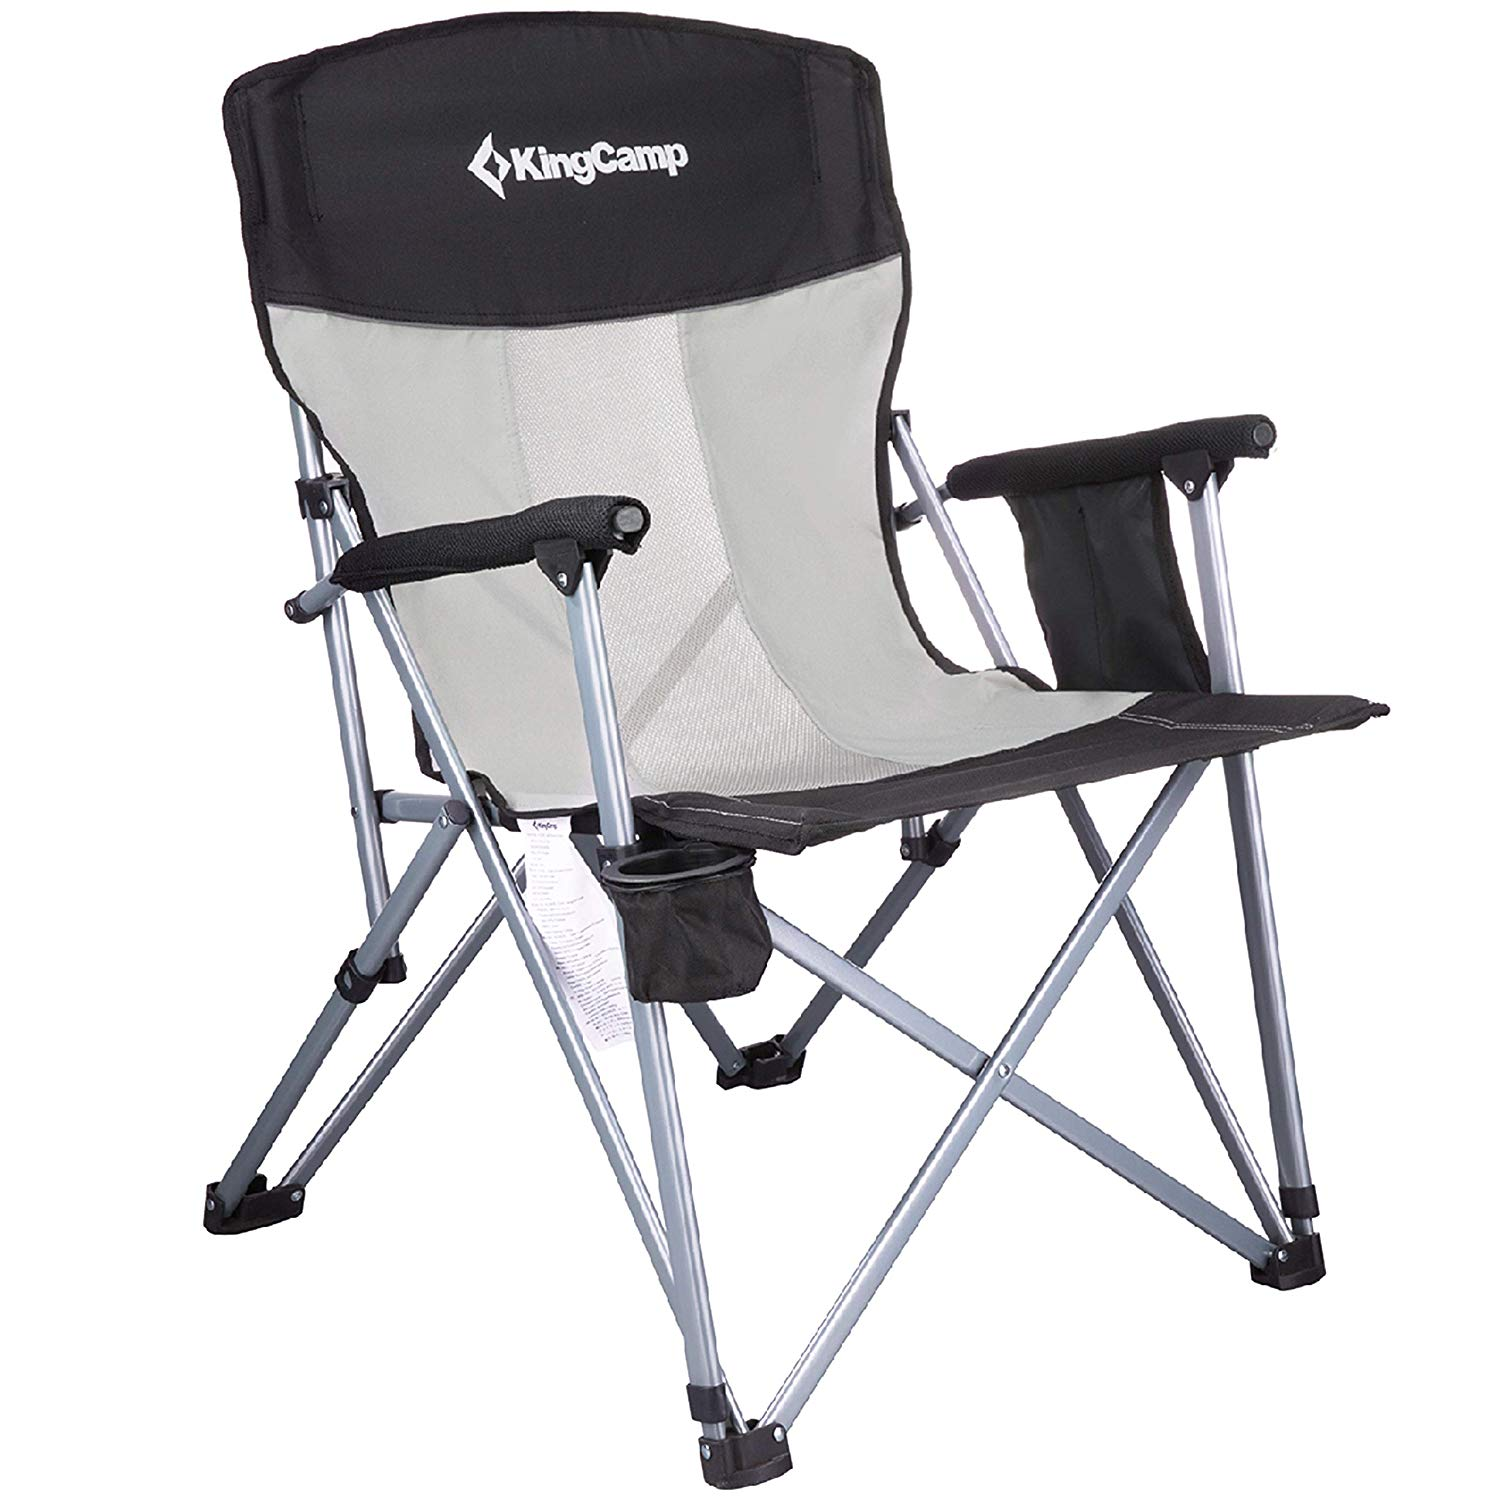 Fabulous Top 10 Best Camping Chair For Bad Back 2019 Reviews Andrewgaddart Wooden Chair Designs For Living Room Andrewgaddartcom